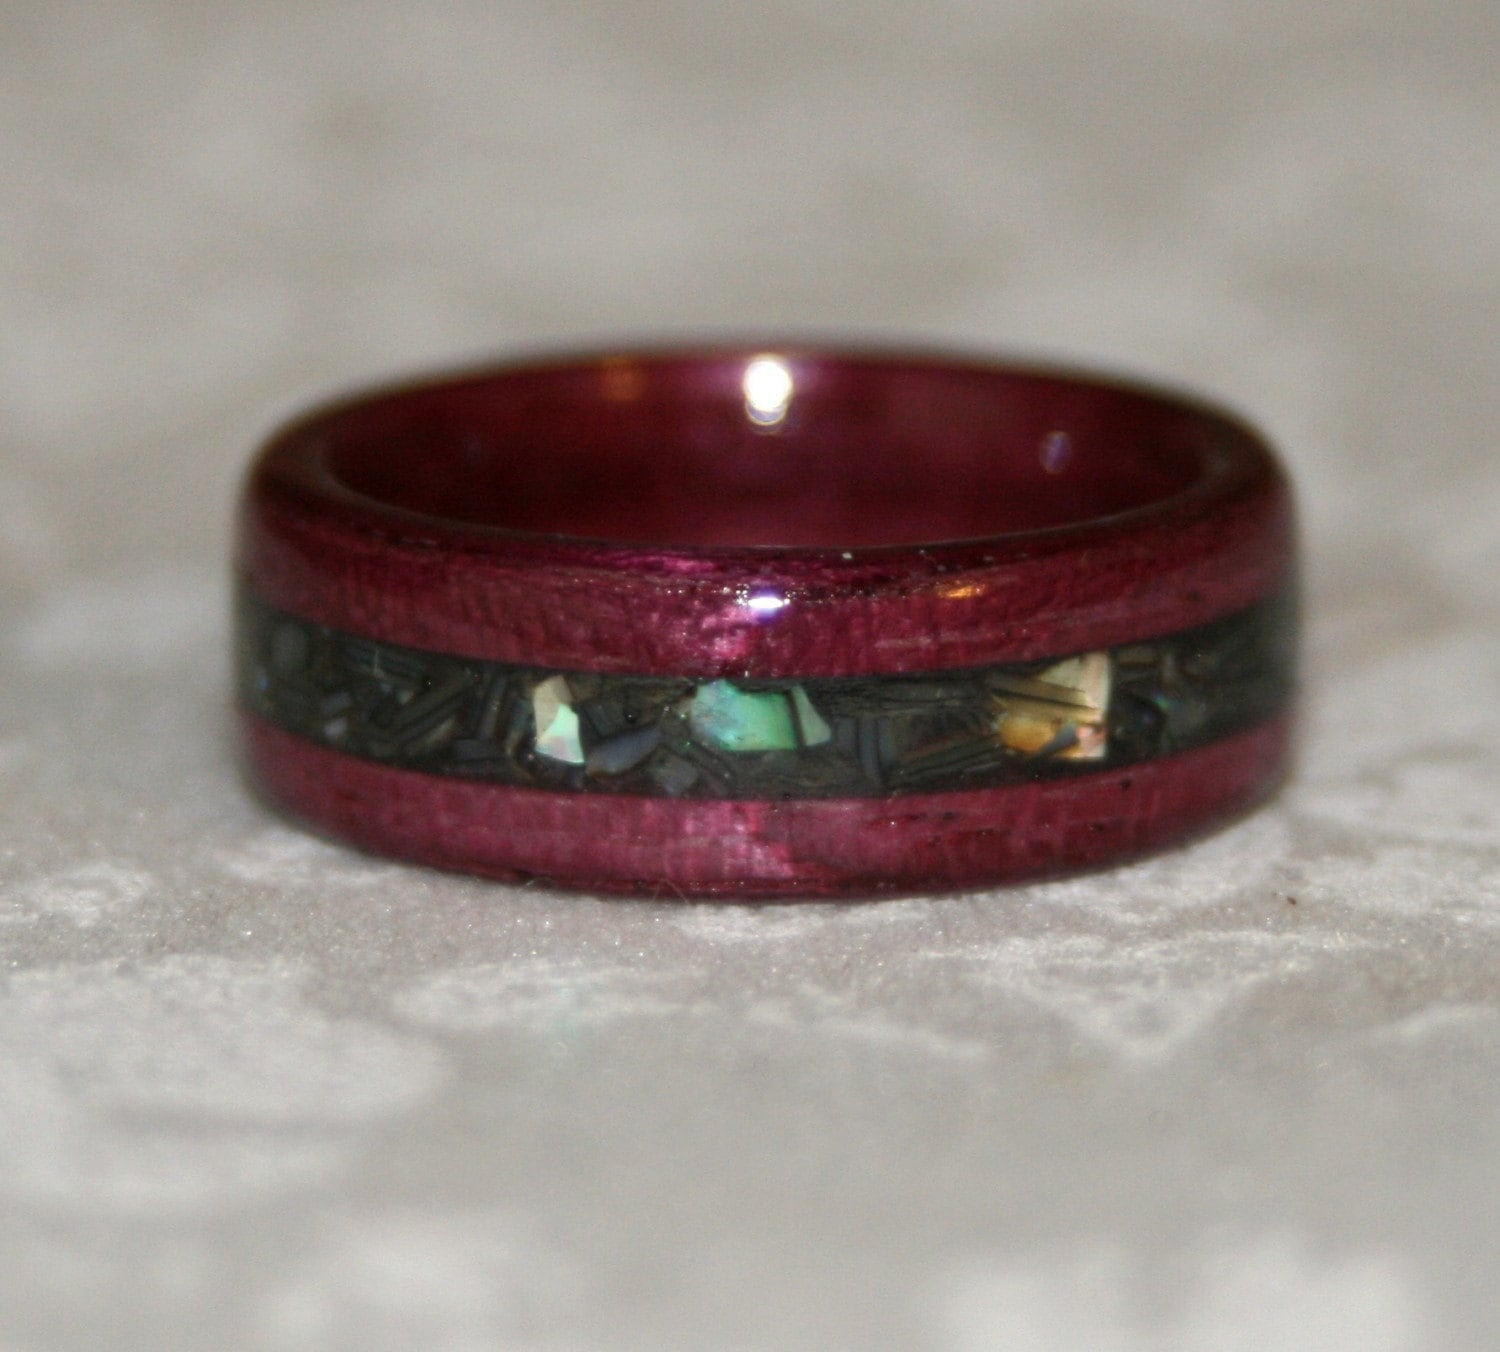 Crushed Gemstone For Inlays : Custom wooden ring with crushed stone inlay